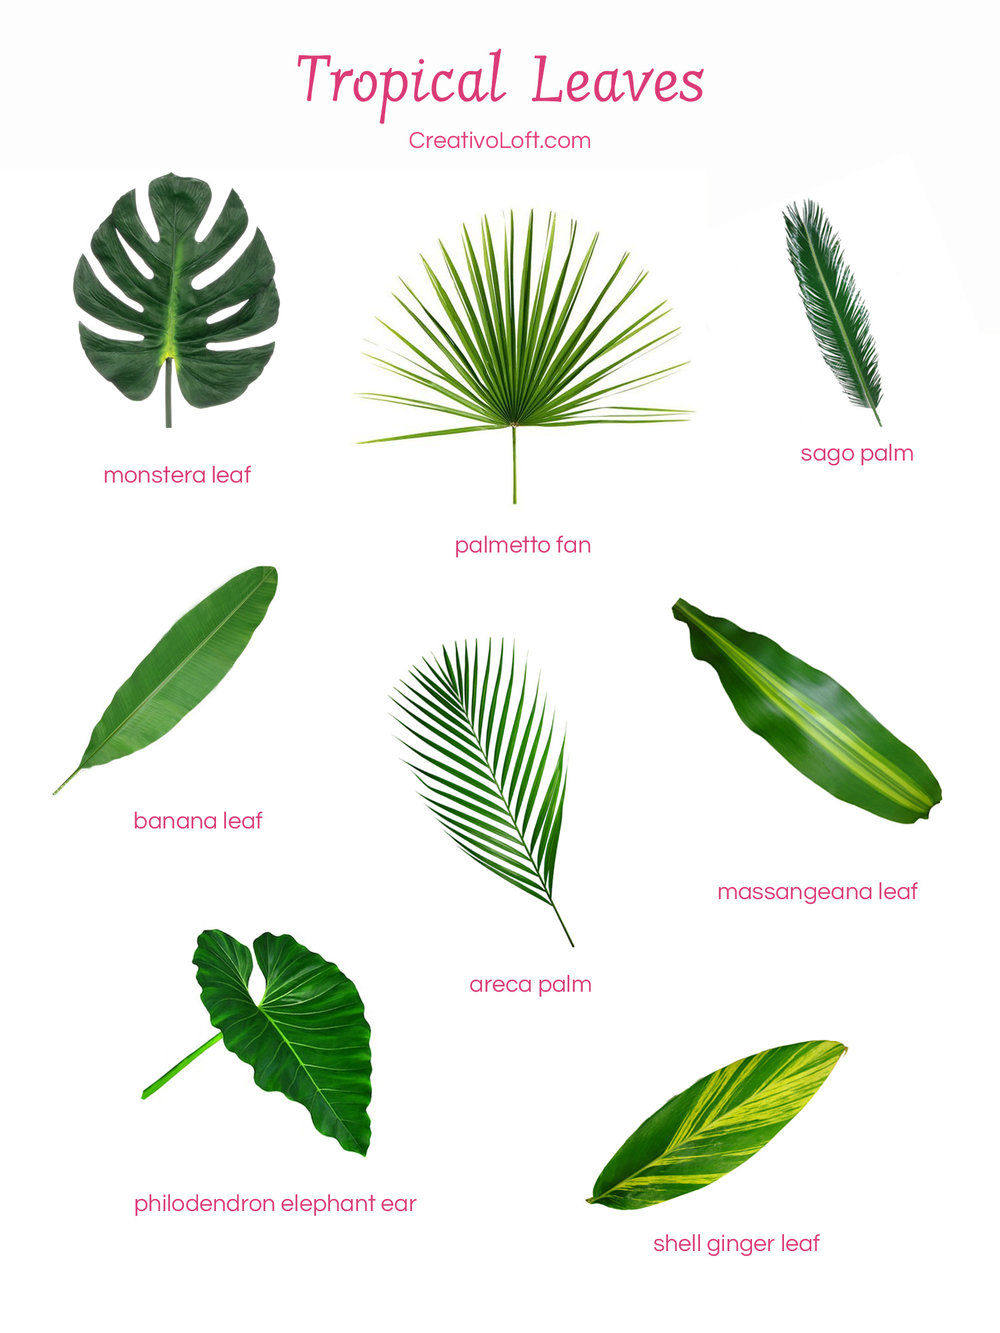 Various popular tropical leaves for floral arrangements.